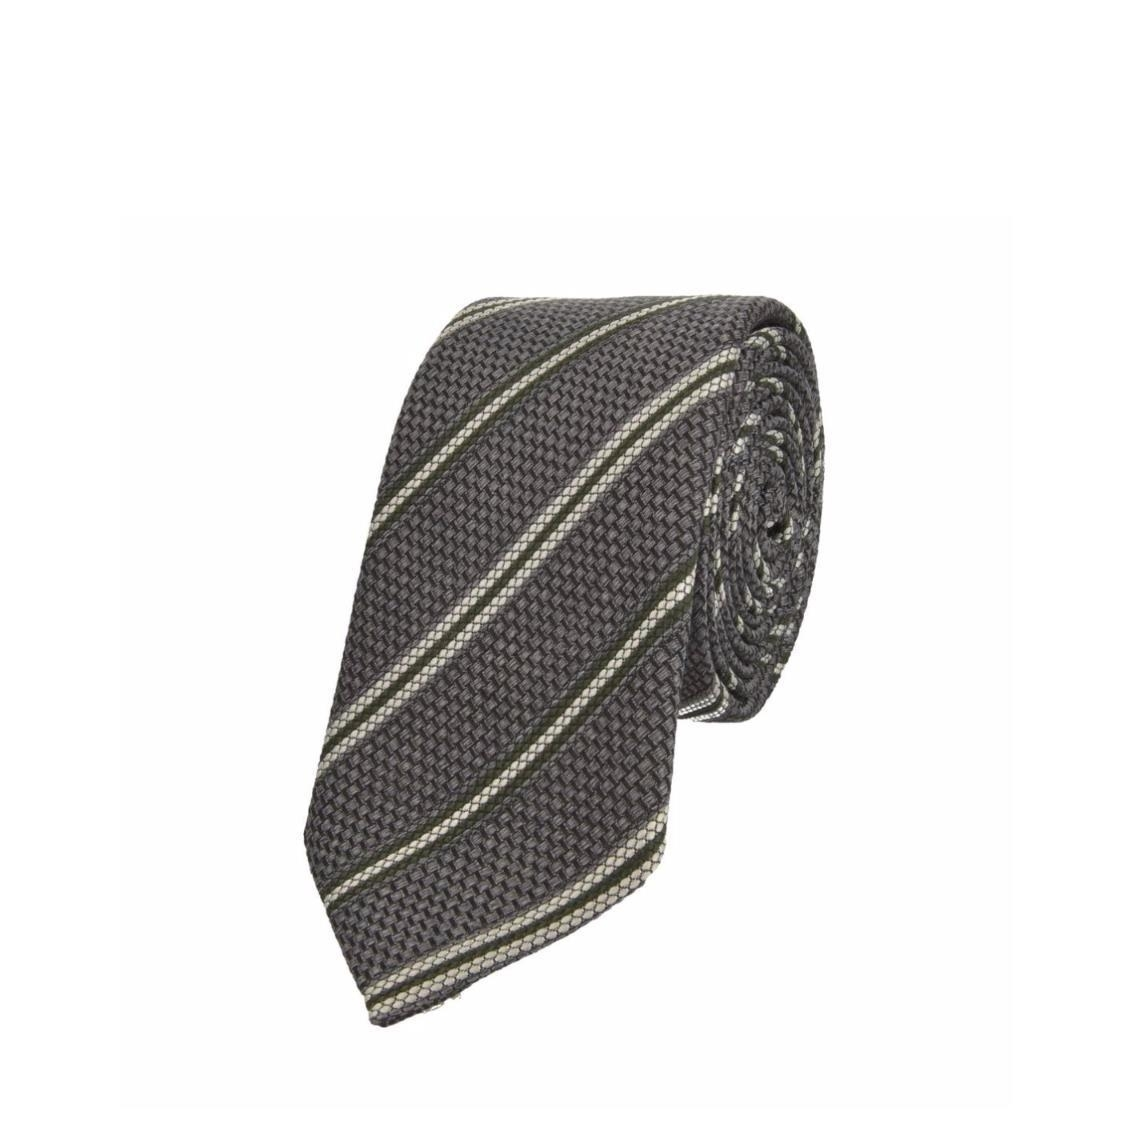 Jacquard Silk Tie in Grey Stripes